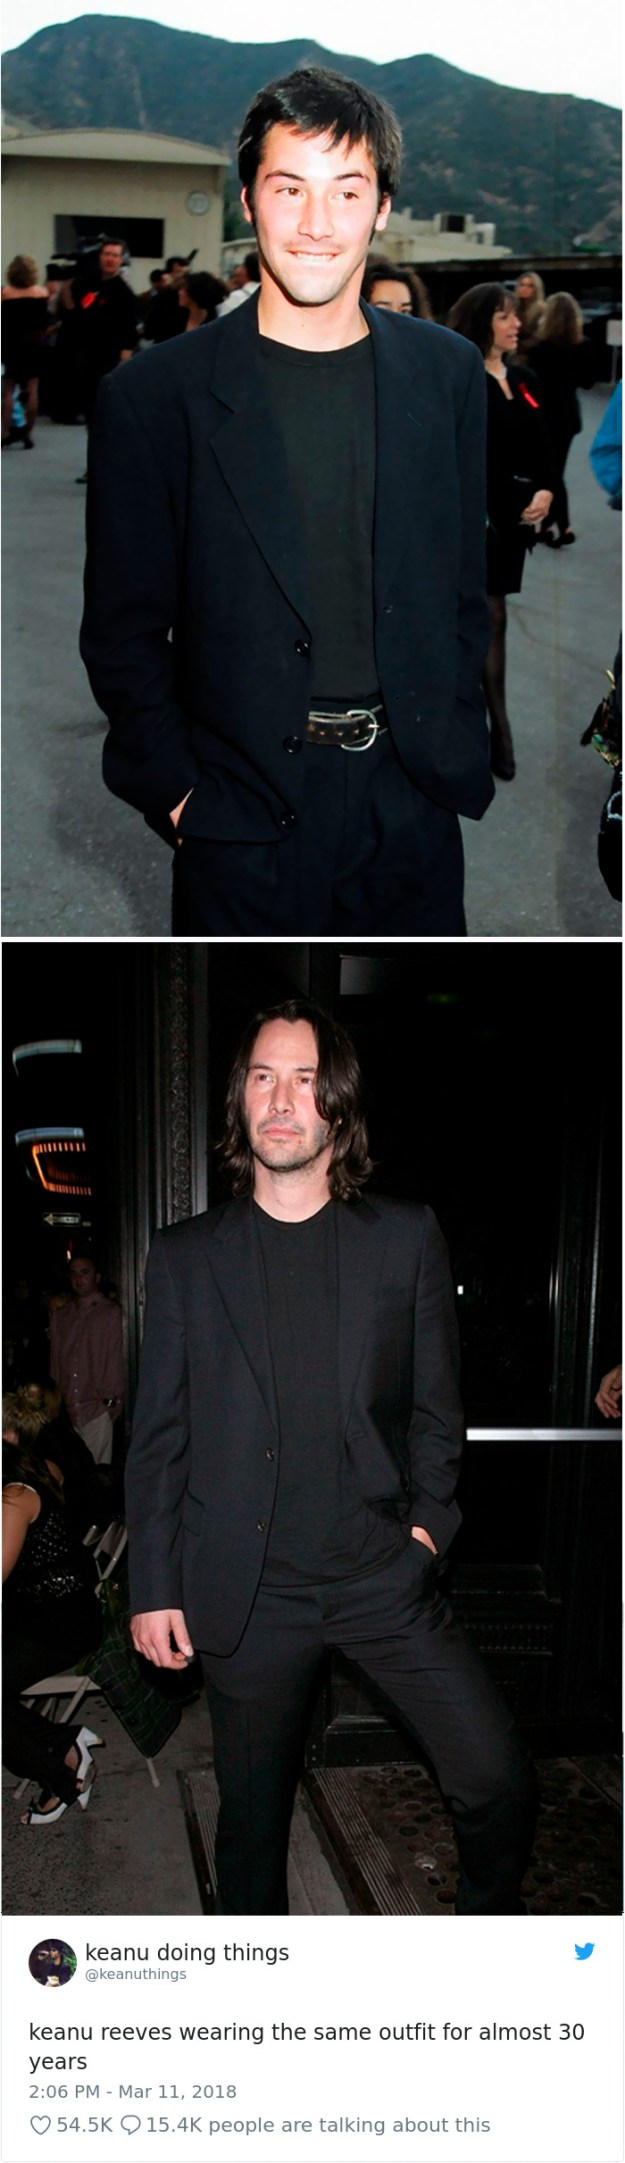 972836111696519168-png__700-5abc994127a87__700 The Internet Can't Stop Laughing At Keanu Reeves Doing Things (26 Pics) Design Random